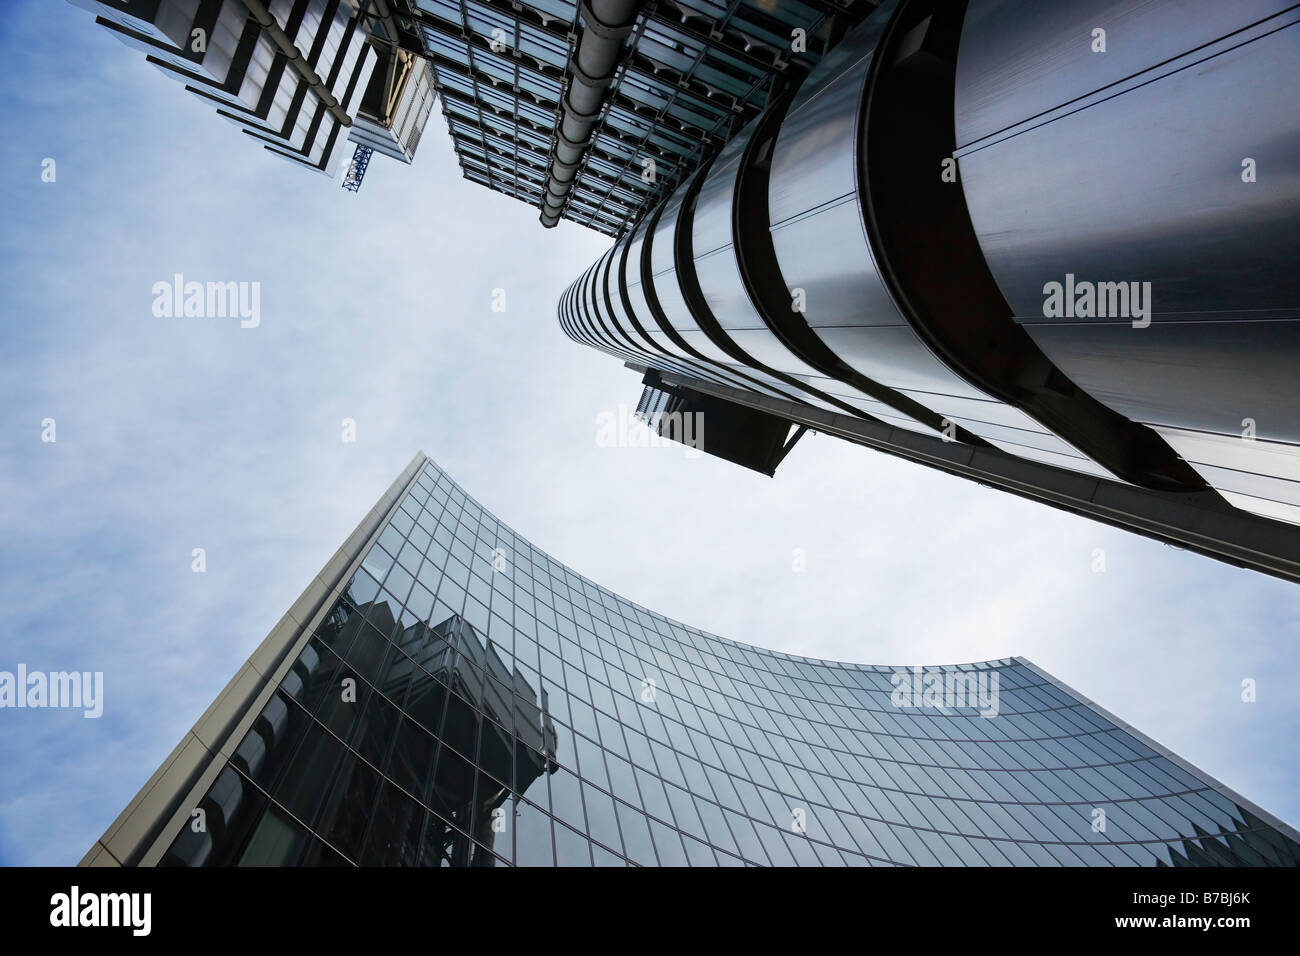 The Lloyds and neighbour building shot from an unusual angle Stock Photo